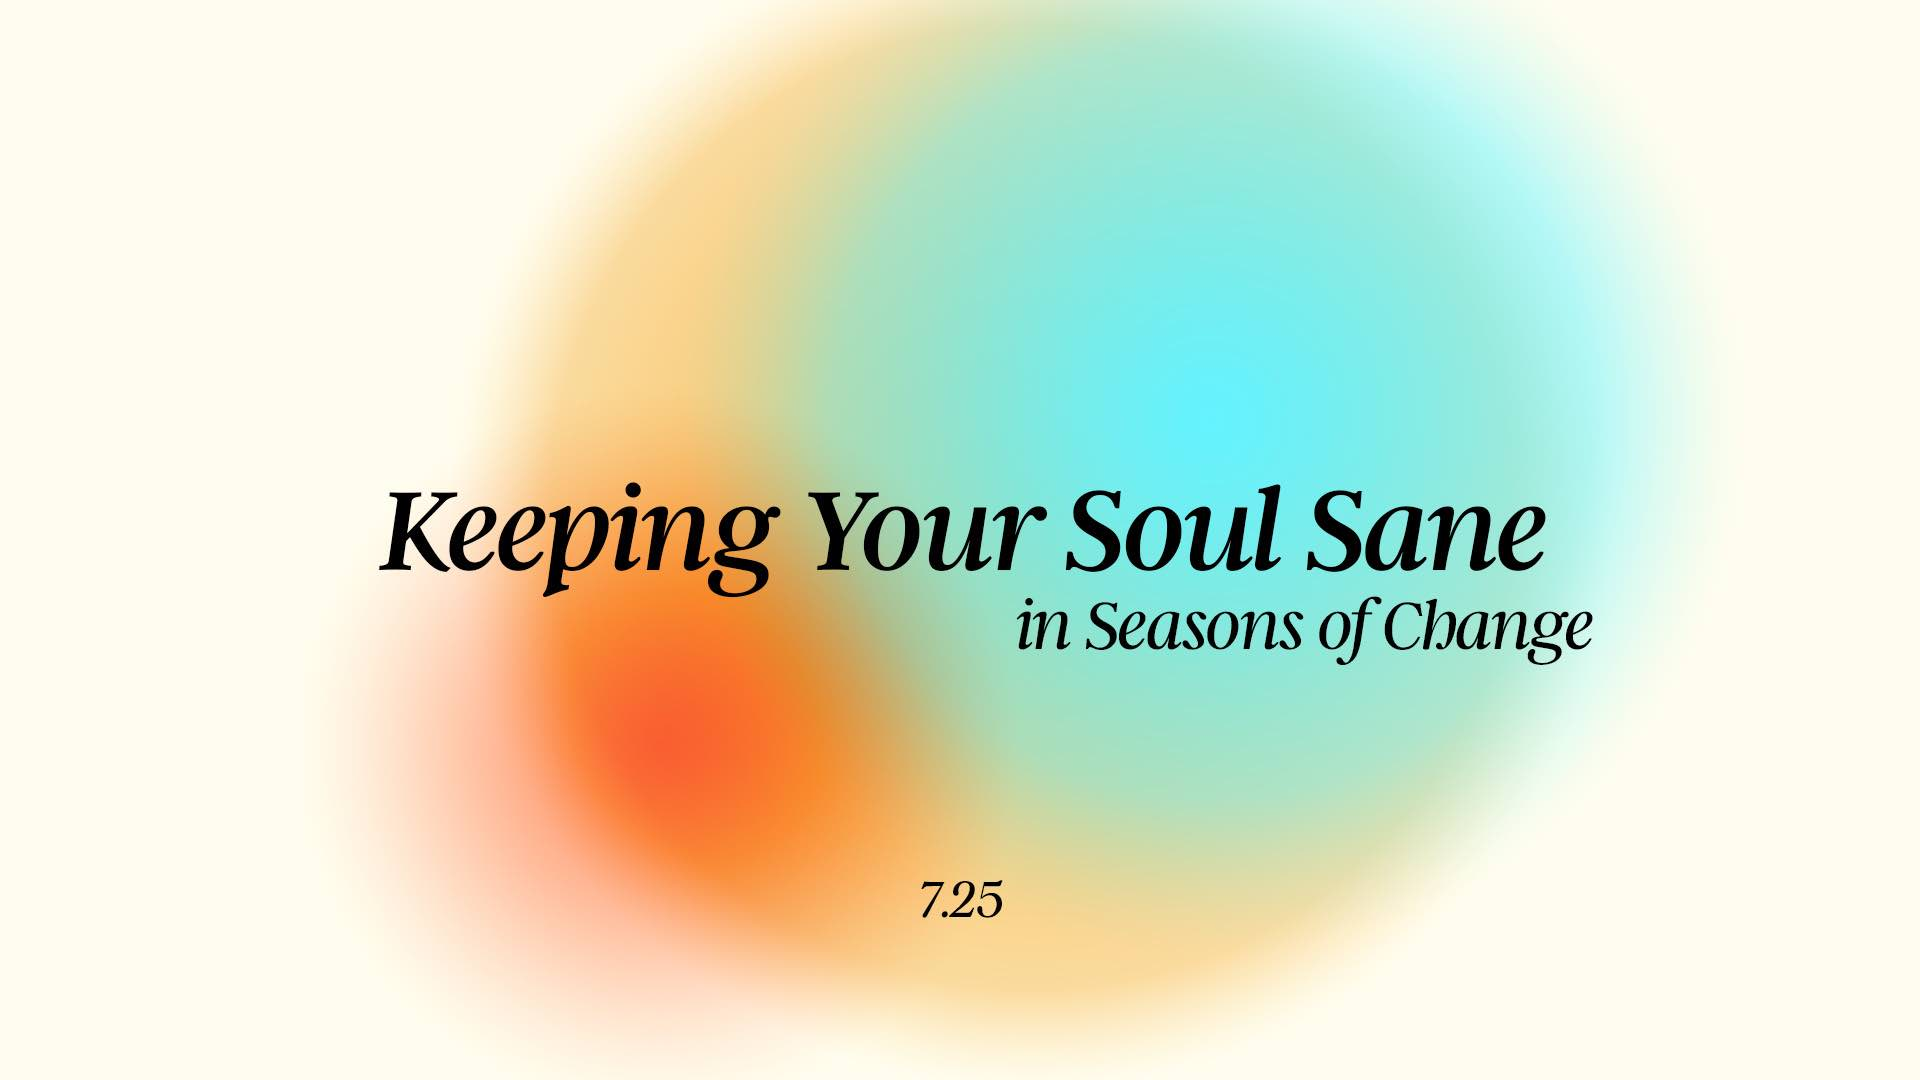 Keeping Your Soul Sane